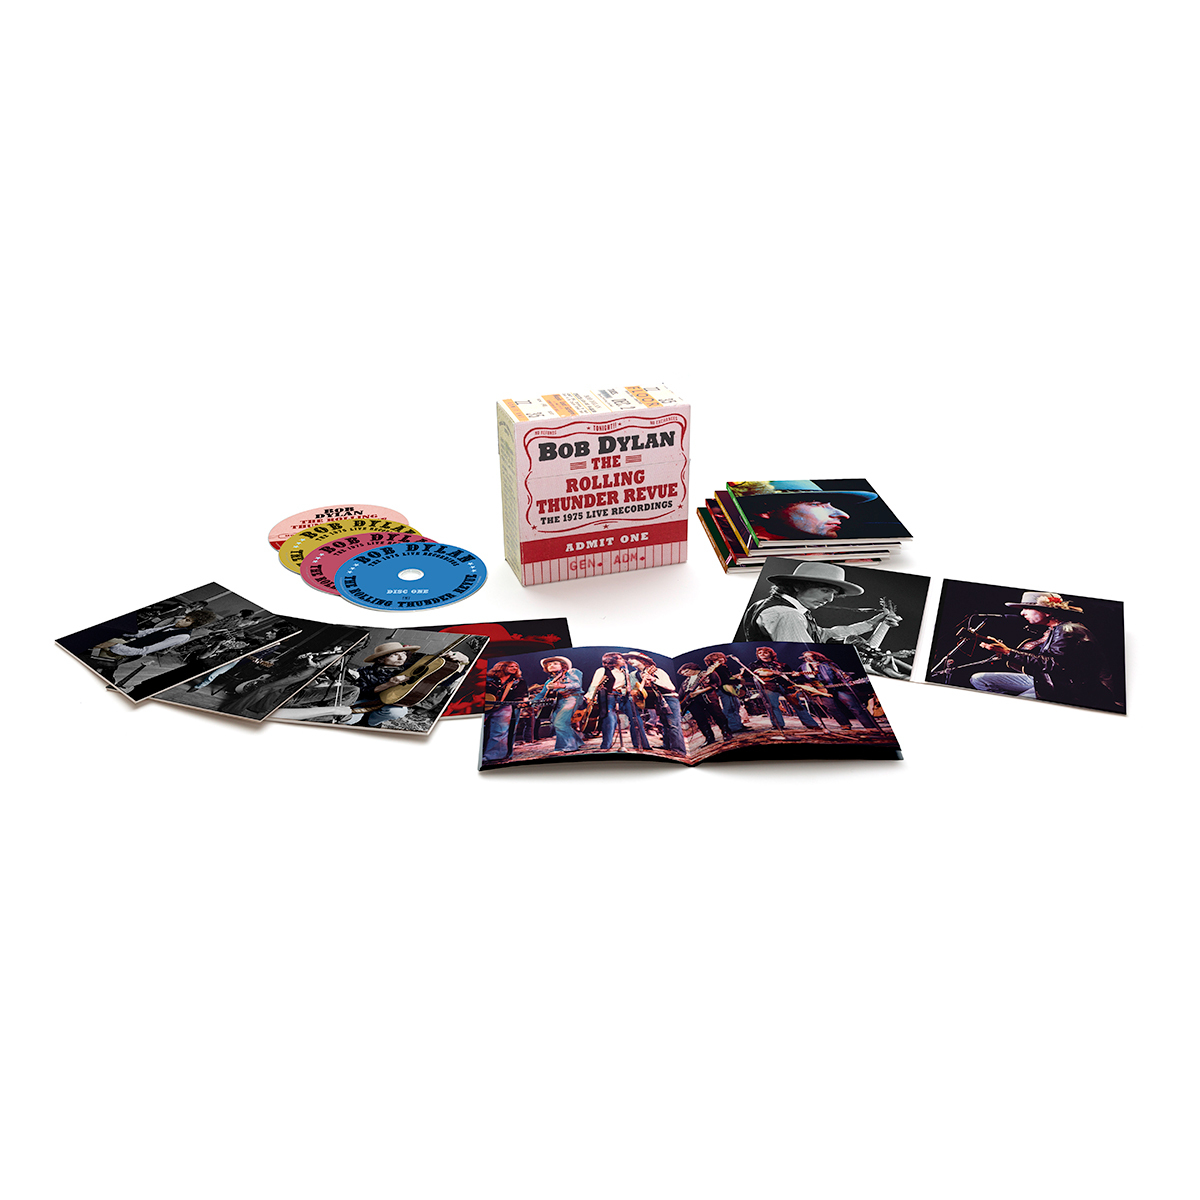 The Rolling Thunder Revue: The 1975 Live Recordings 14-CD Box Set